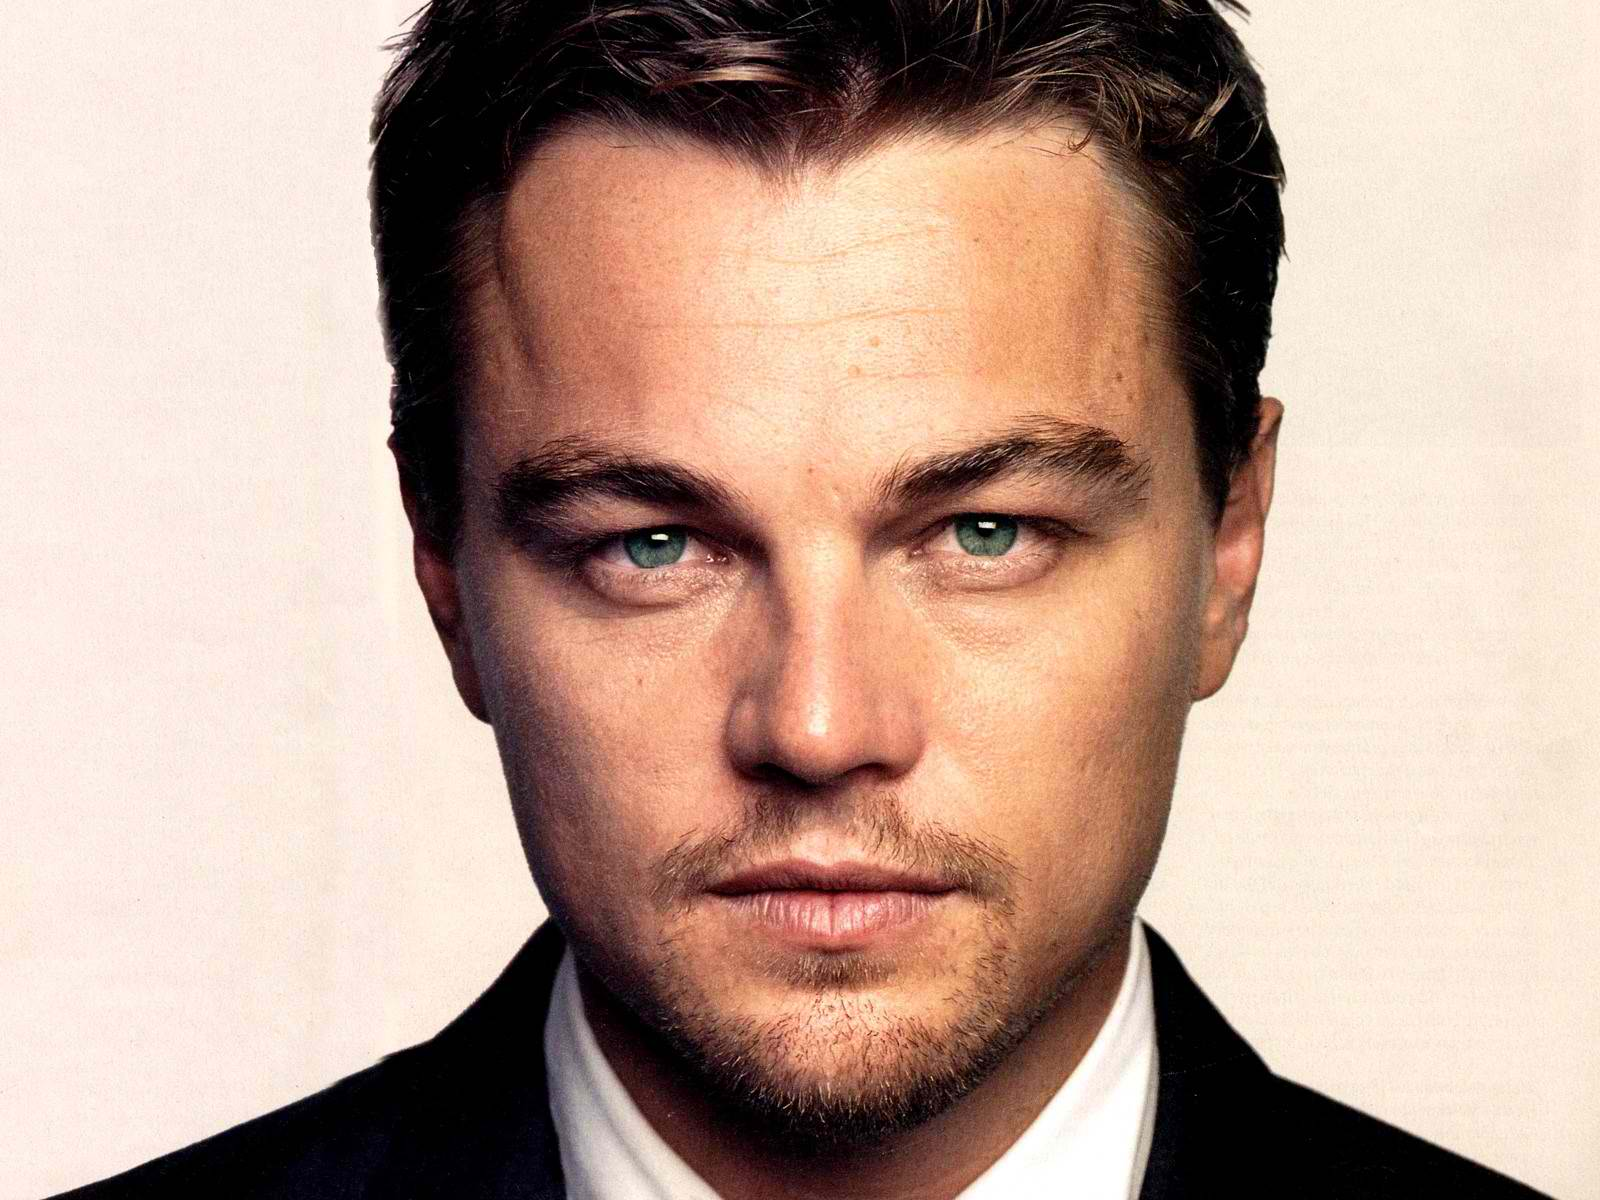 Hollywood actor DiCaprio plans break from Acting